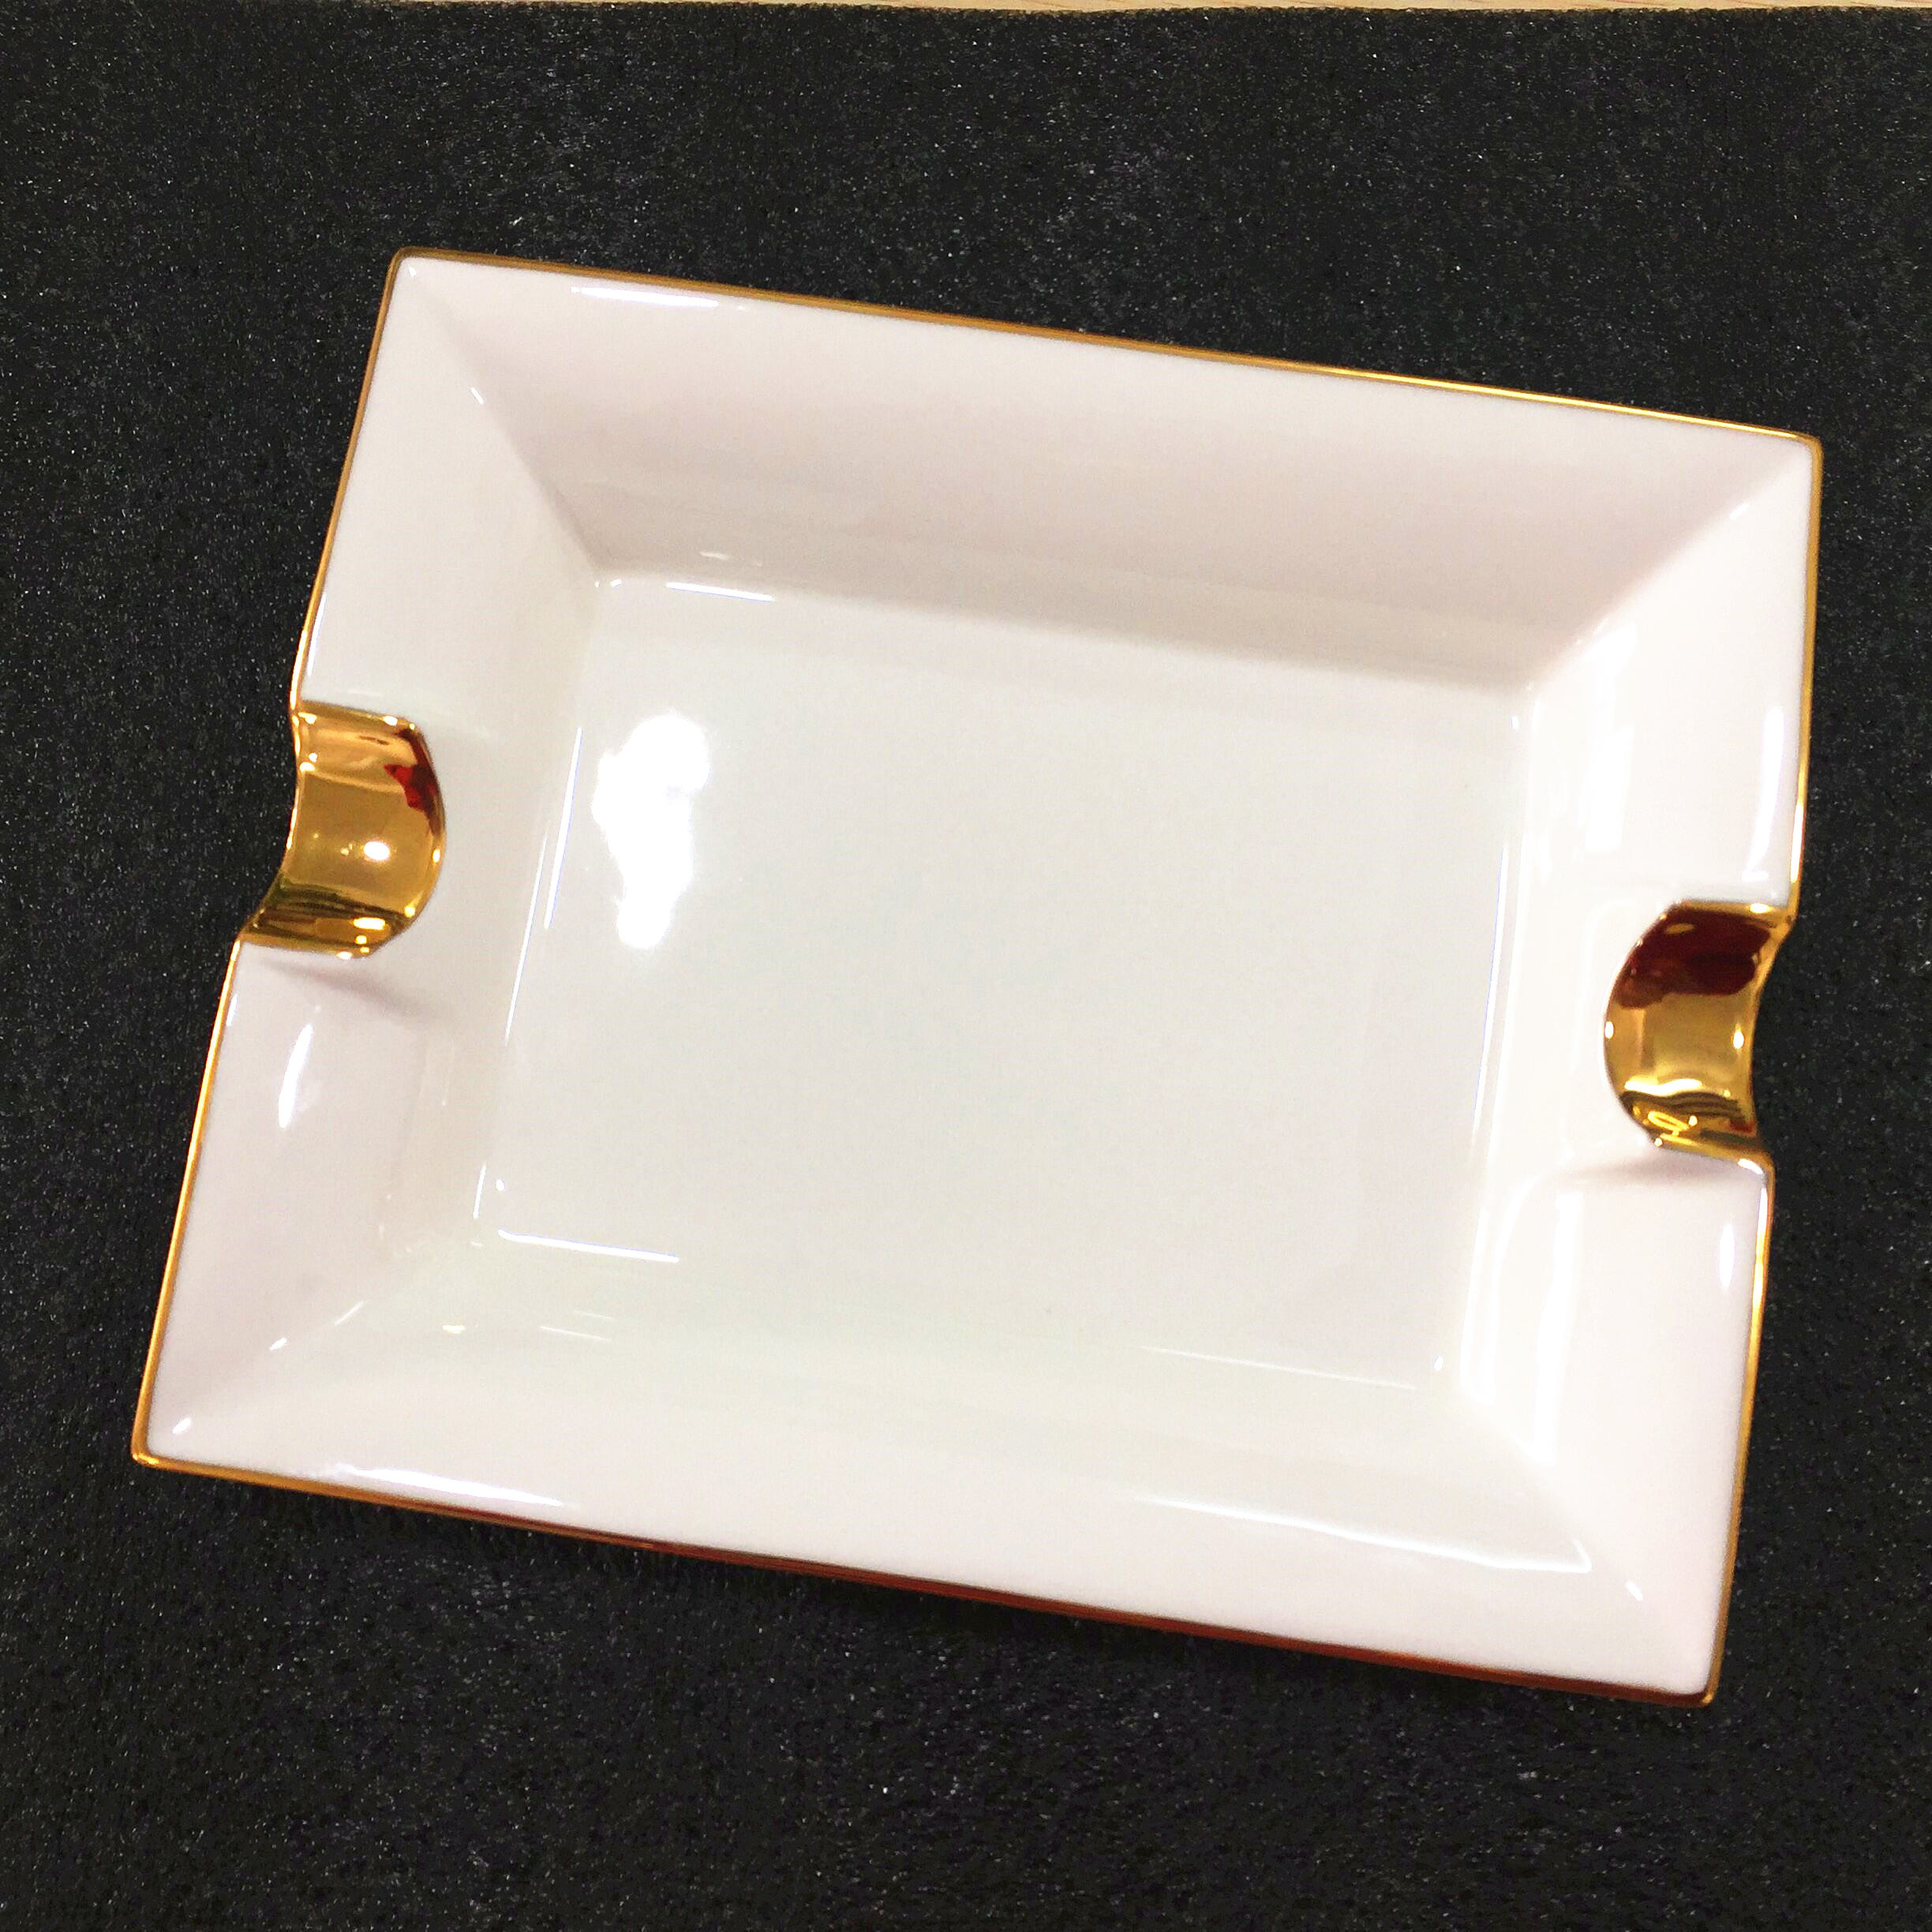 Custom Glod Ashtray Luxury Hotel Porcelain Ashtray Fine Bone China Ashtray